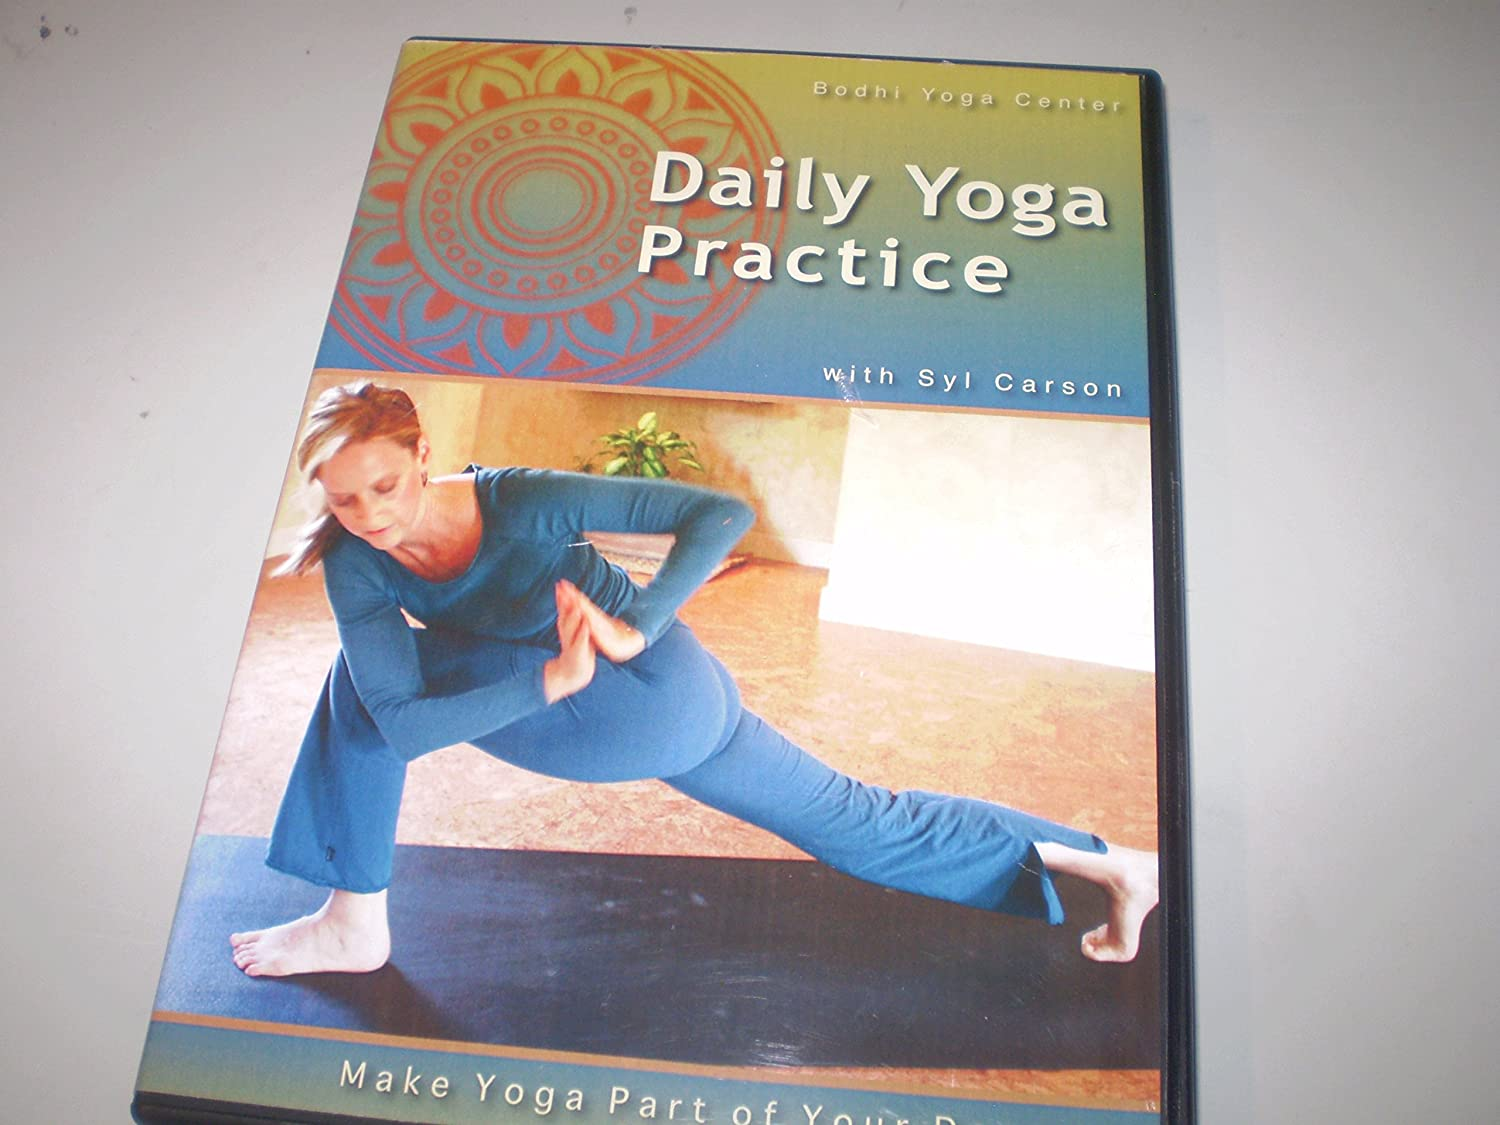 Amazon.com: Daily Yoga Practice with Syl Carson: Movies & TV